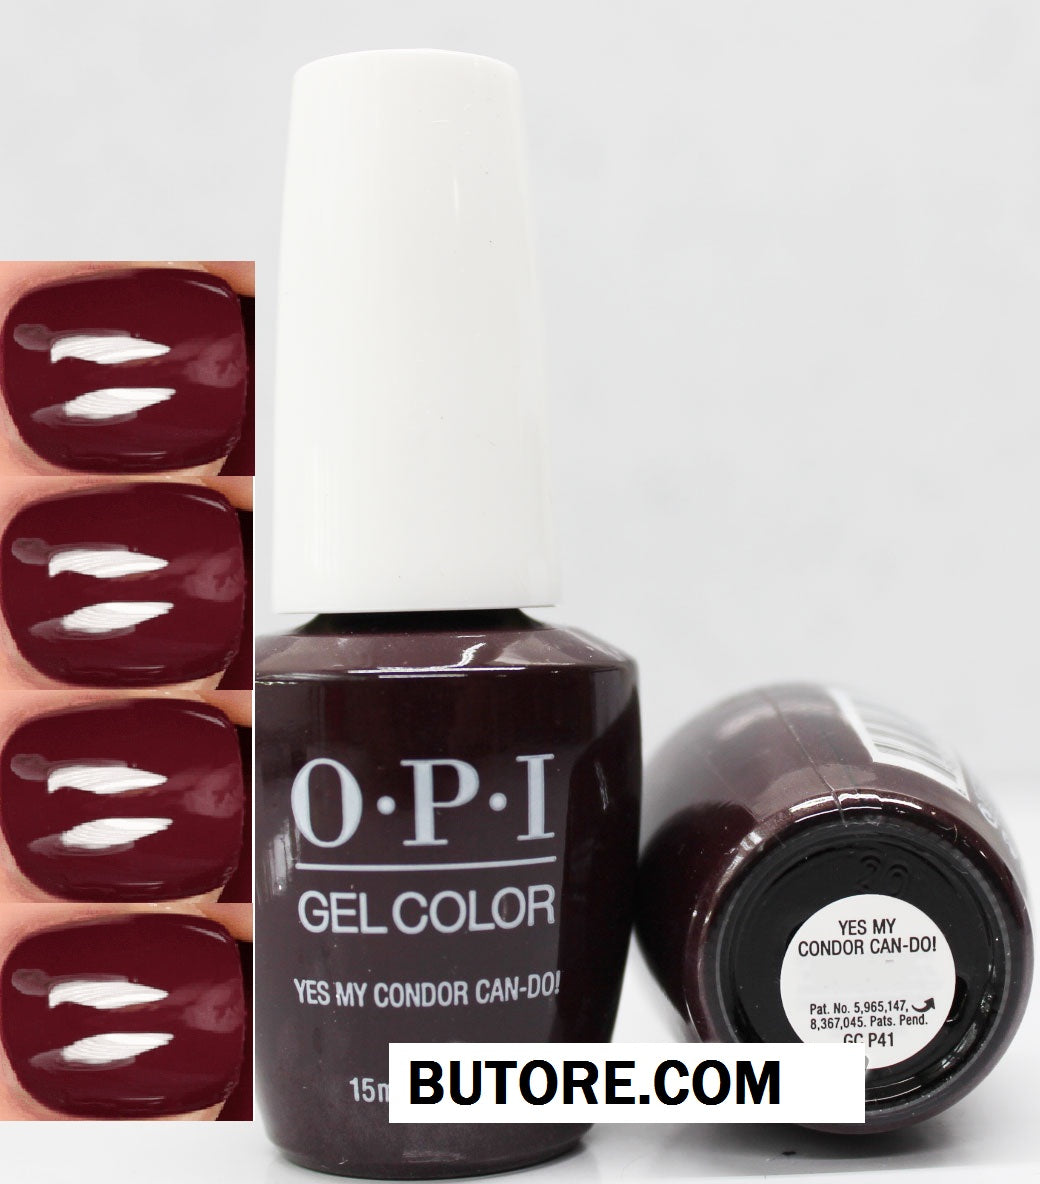 OPI Yes My Condor Can-Dol Gel